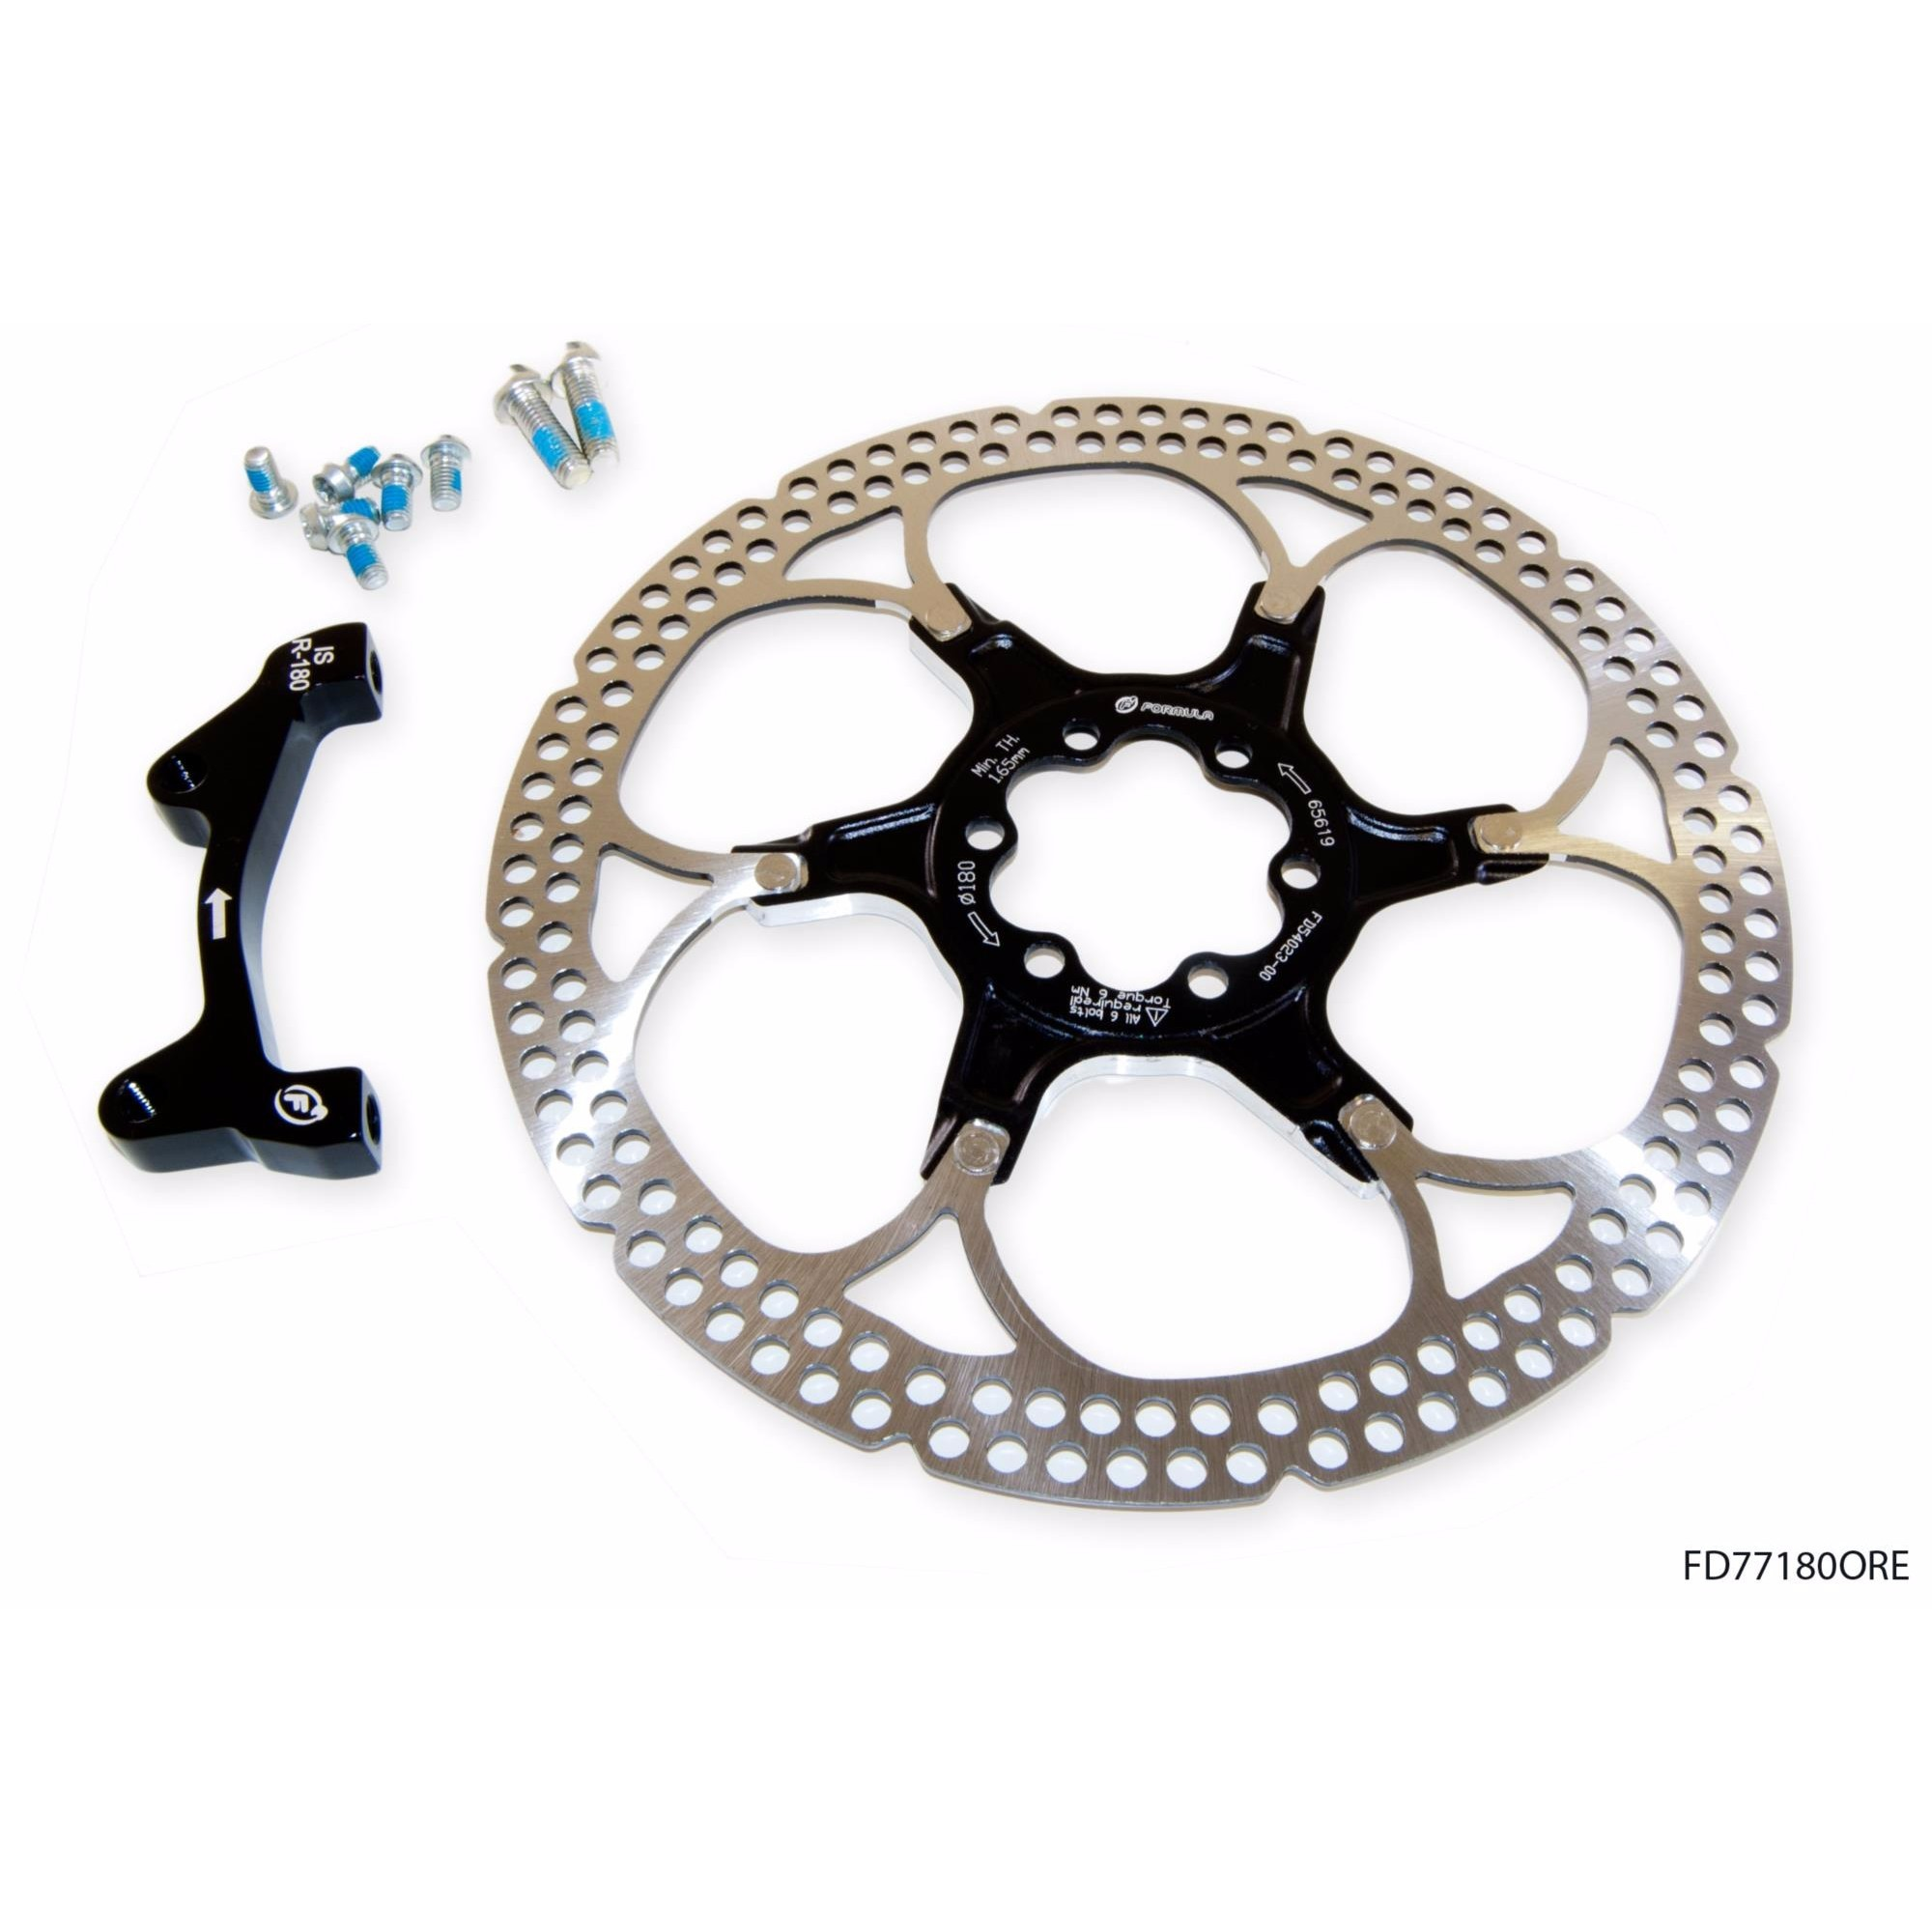 NEW FSA K-Force DISC BRAKE ROTOR type 2pc Rotor 140mm for MTB Hydraulic brake